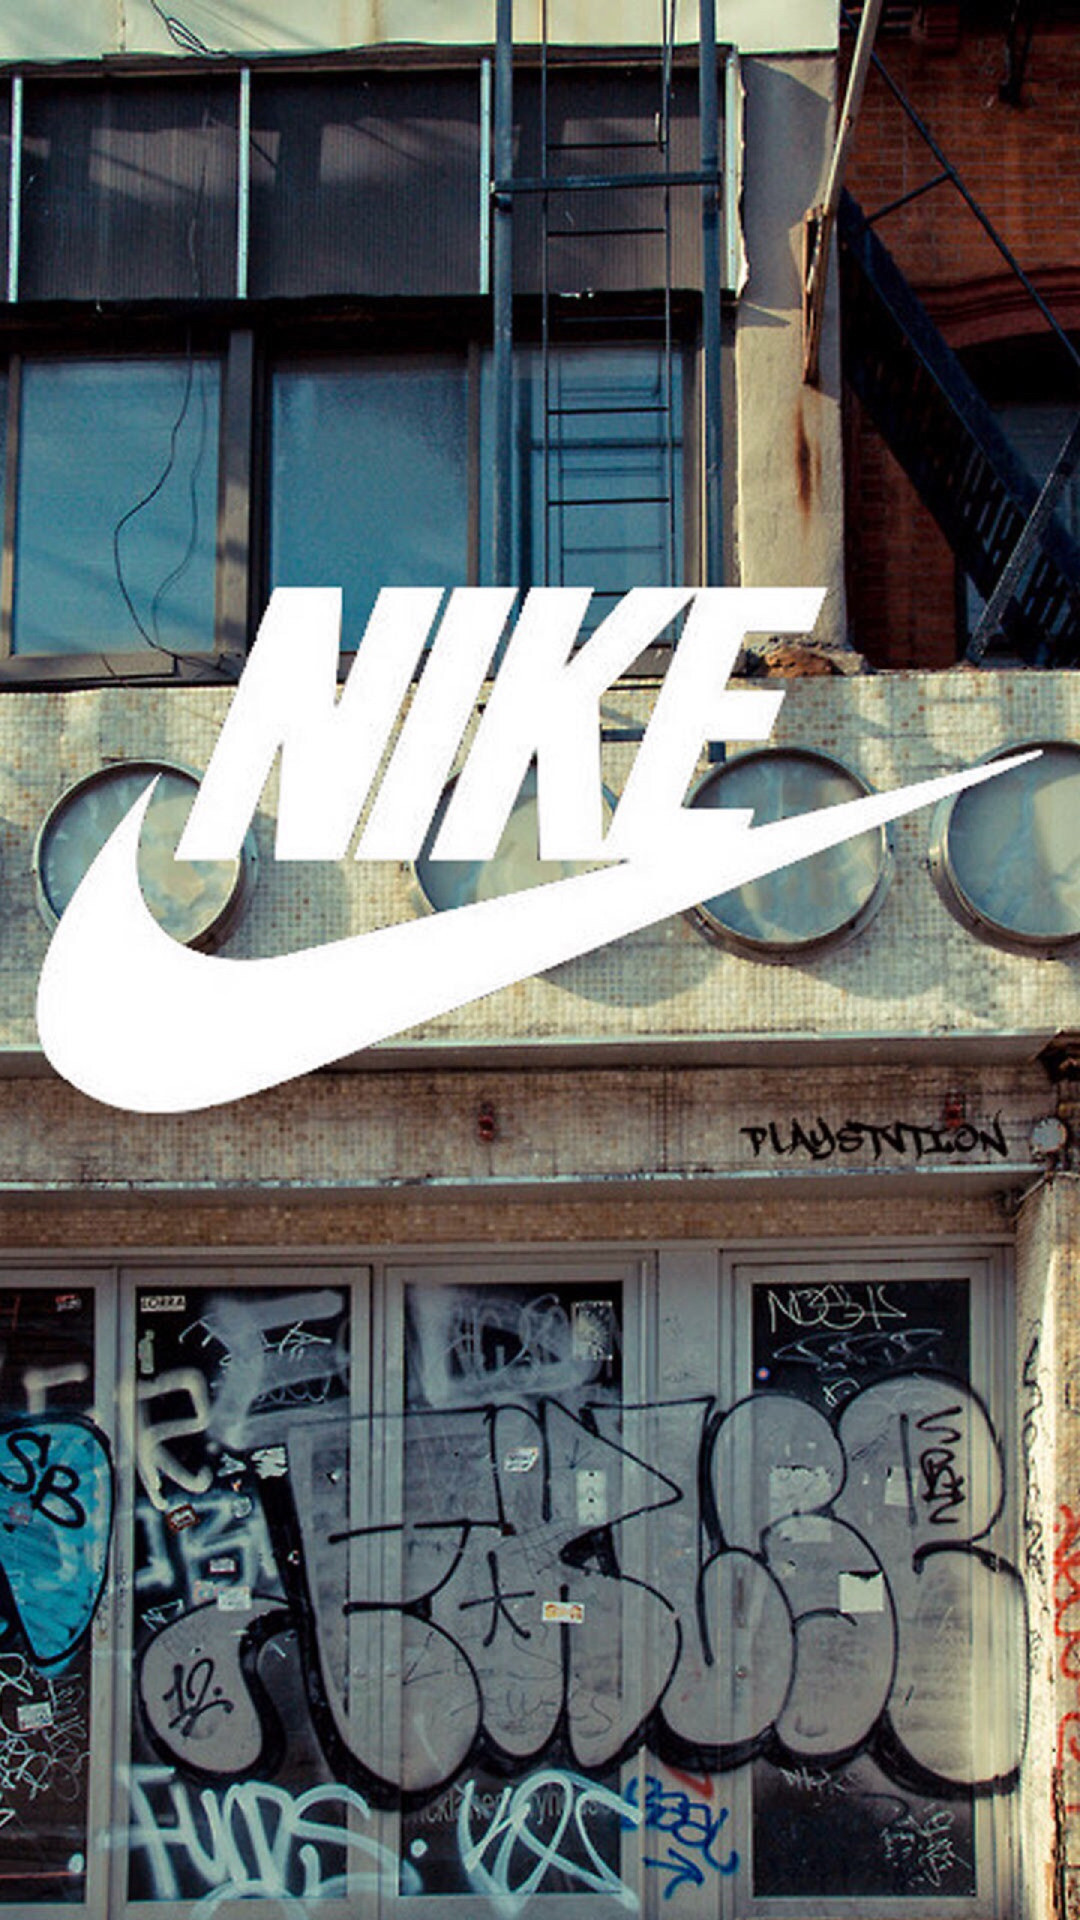 Cool Wallpaper Nike Aesthetic - 700229-nike-sb-wallpaper-1080x1920-for-windows  Graphic_53179.jpg